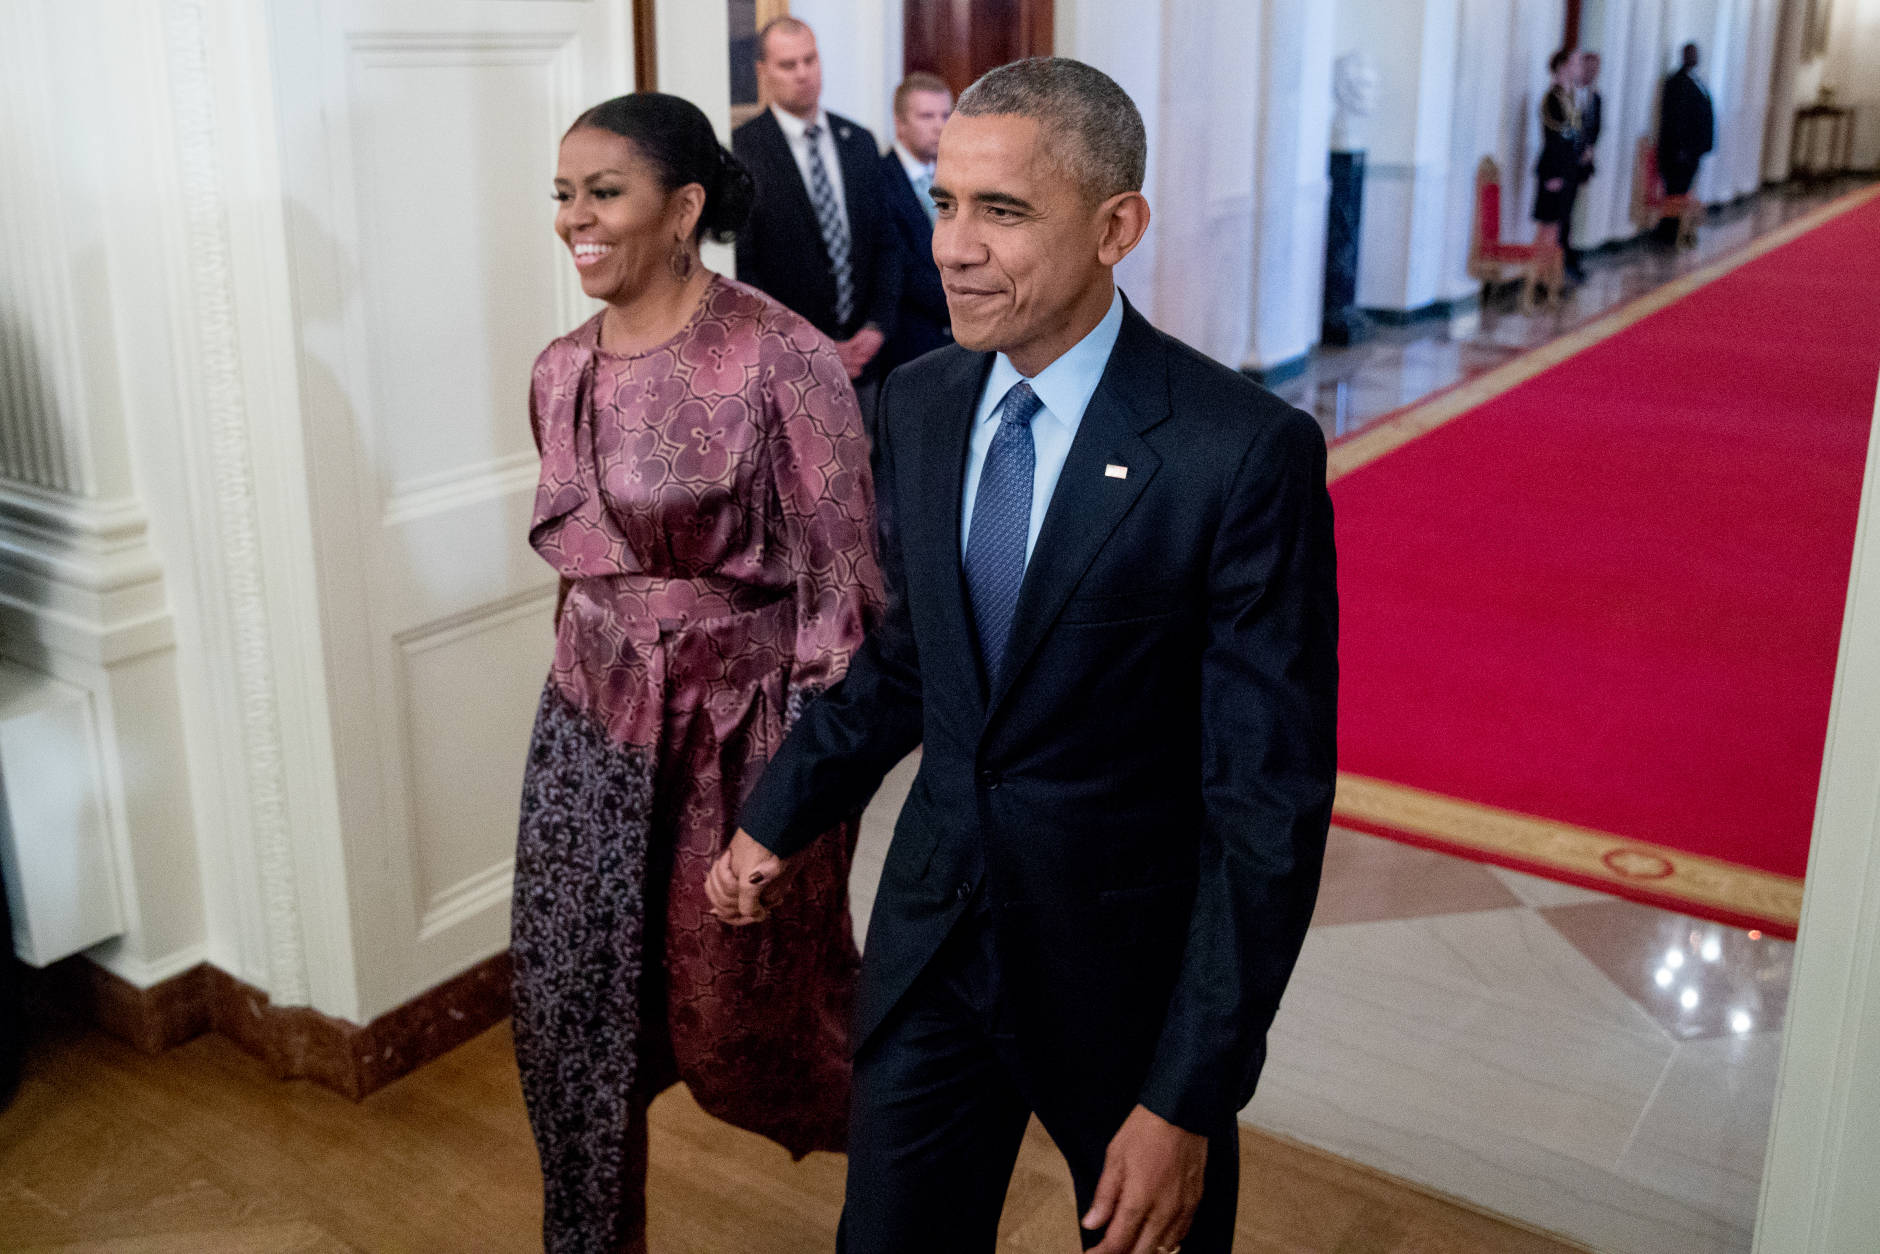 President Barack Obama and first lady Michelle Obama, left, arrive for a Presidential Medal of Freedom ceremony in the East Room of the White House, Tuesday, Nov. 22, 2016, in Washington. Obama is recognizing 21 Americans with the nation's highest civilian award, including giants of the entertainment industry, sports legends, activists and innovators. (AP Photo/Andrew Harnik)